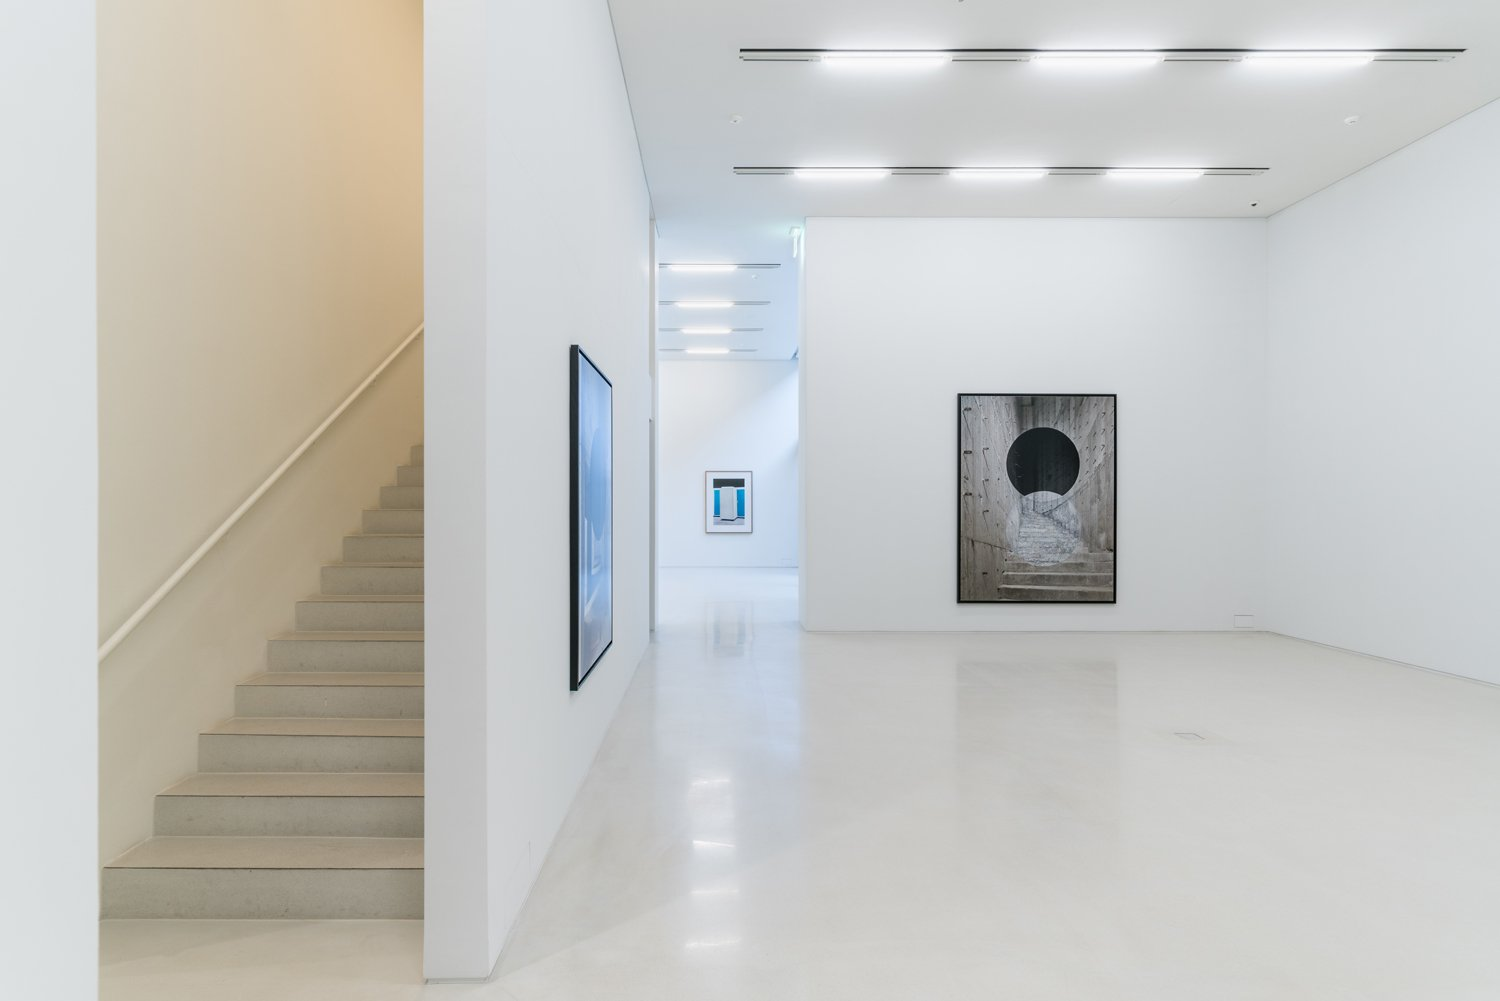 Gallery space Yousub Song - Studio Worlderful, Seoul, South Korea